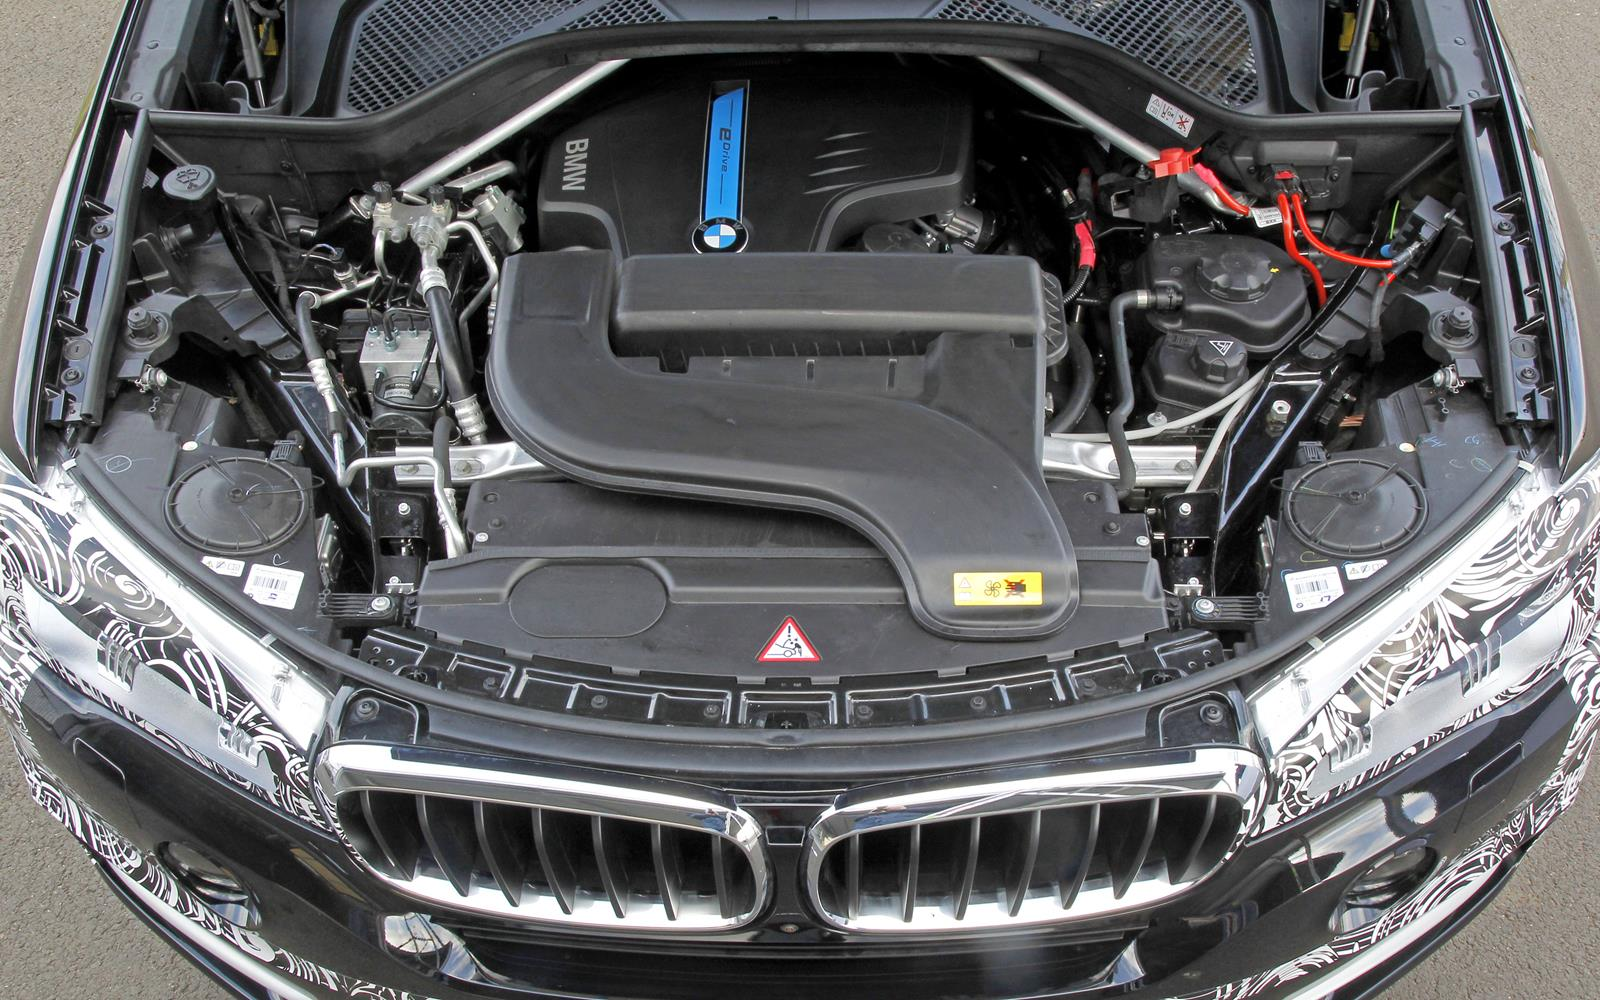 2015 Bmw Engine Bay Diagram All Kind Of Wiring Diagrams \u2022 2000 BMW  323I Engine Diagram Bmw Z3 Engine Bay Diagram